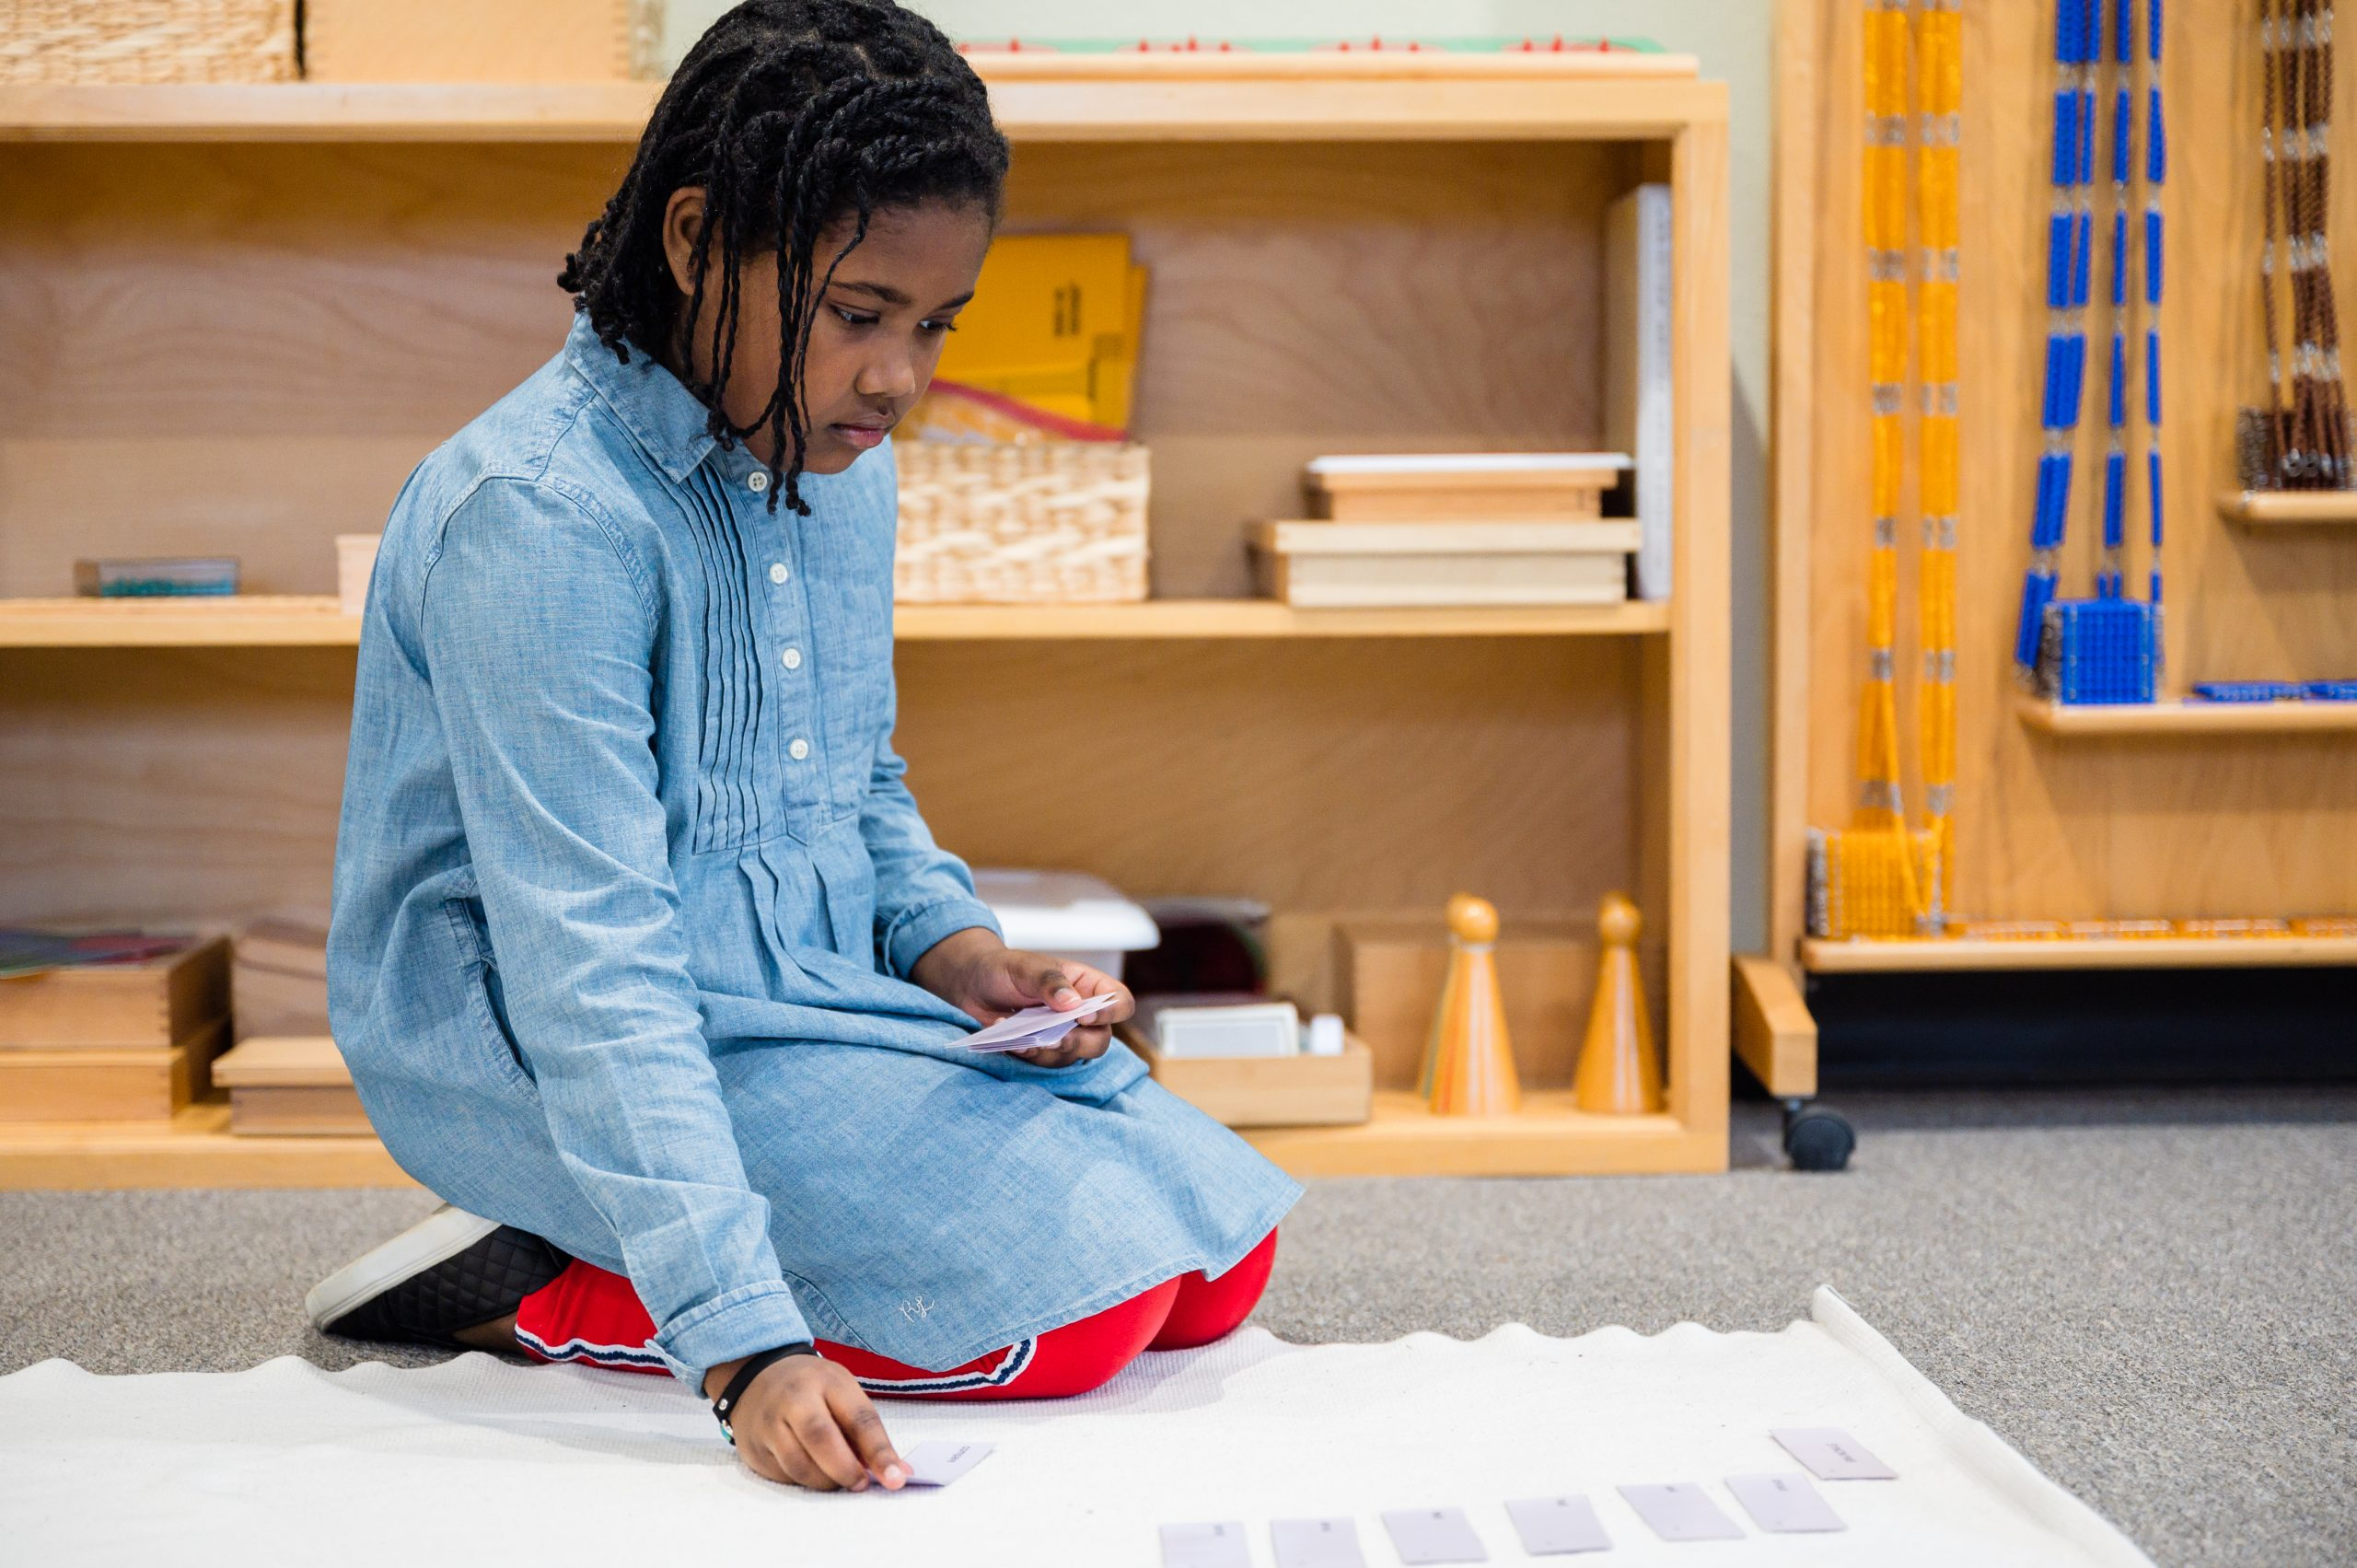 Montessori School of Fort Worth encourages students to learn through curiosity and independence.